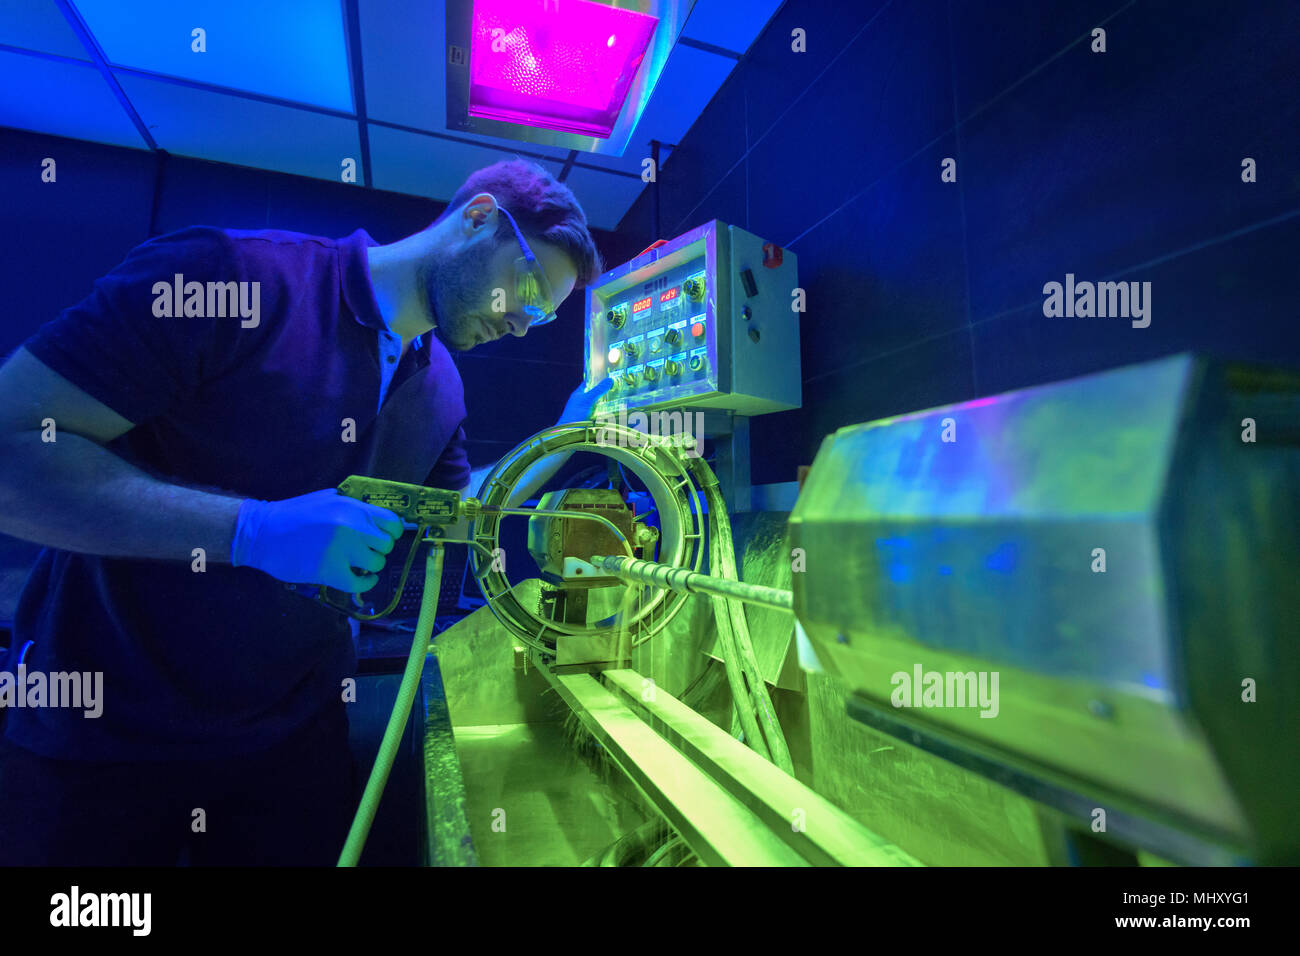 Worker using ultra violet light to detect cracks in electroplating factory - Stock Image